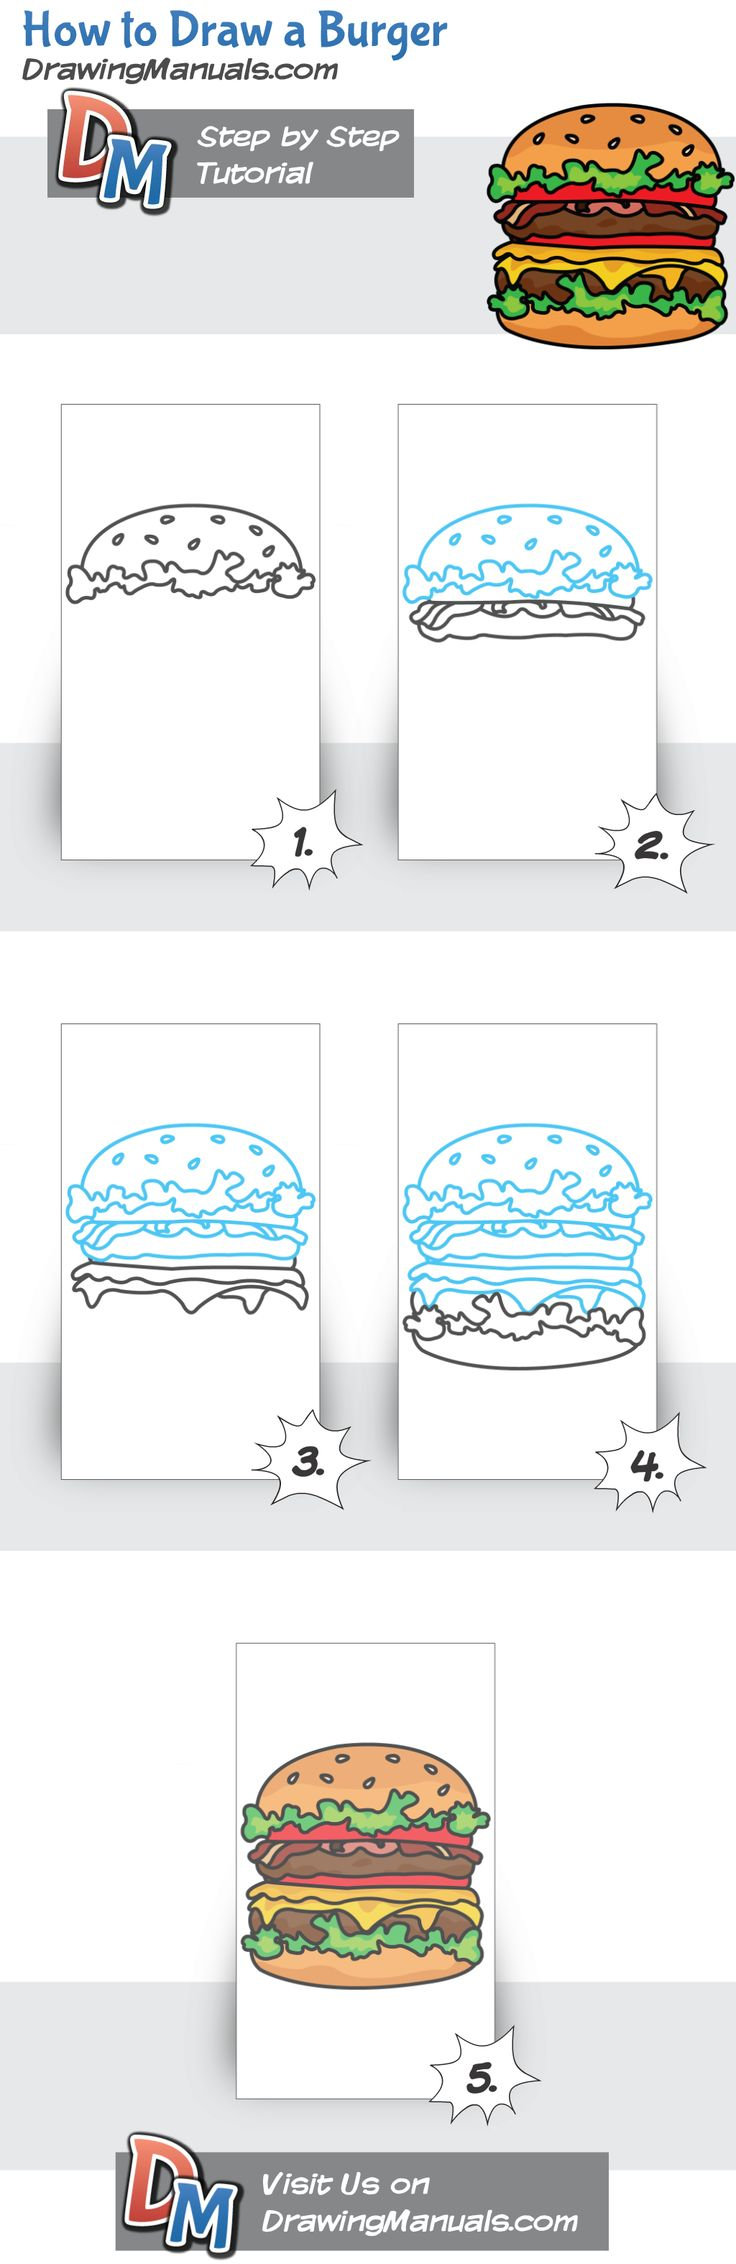 How to Draw a Burger, food drawing tutorial http://drawingmanuals.com/manual/how-to-draw-a-burger/